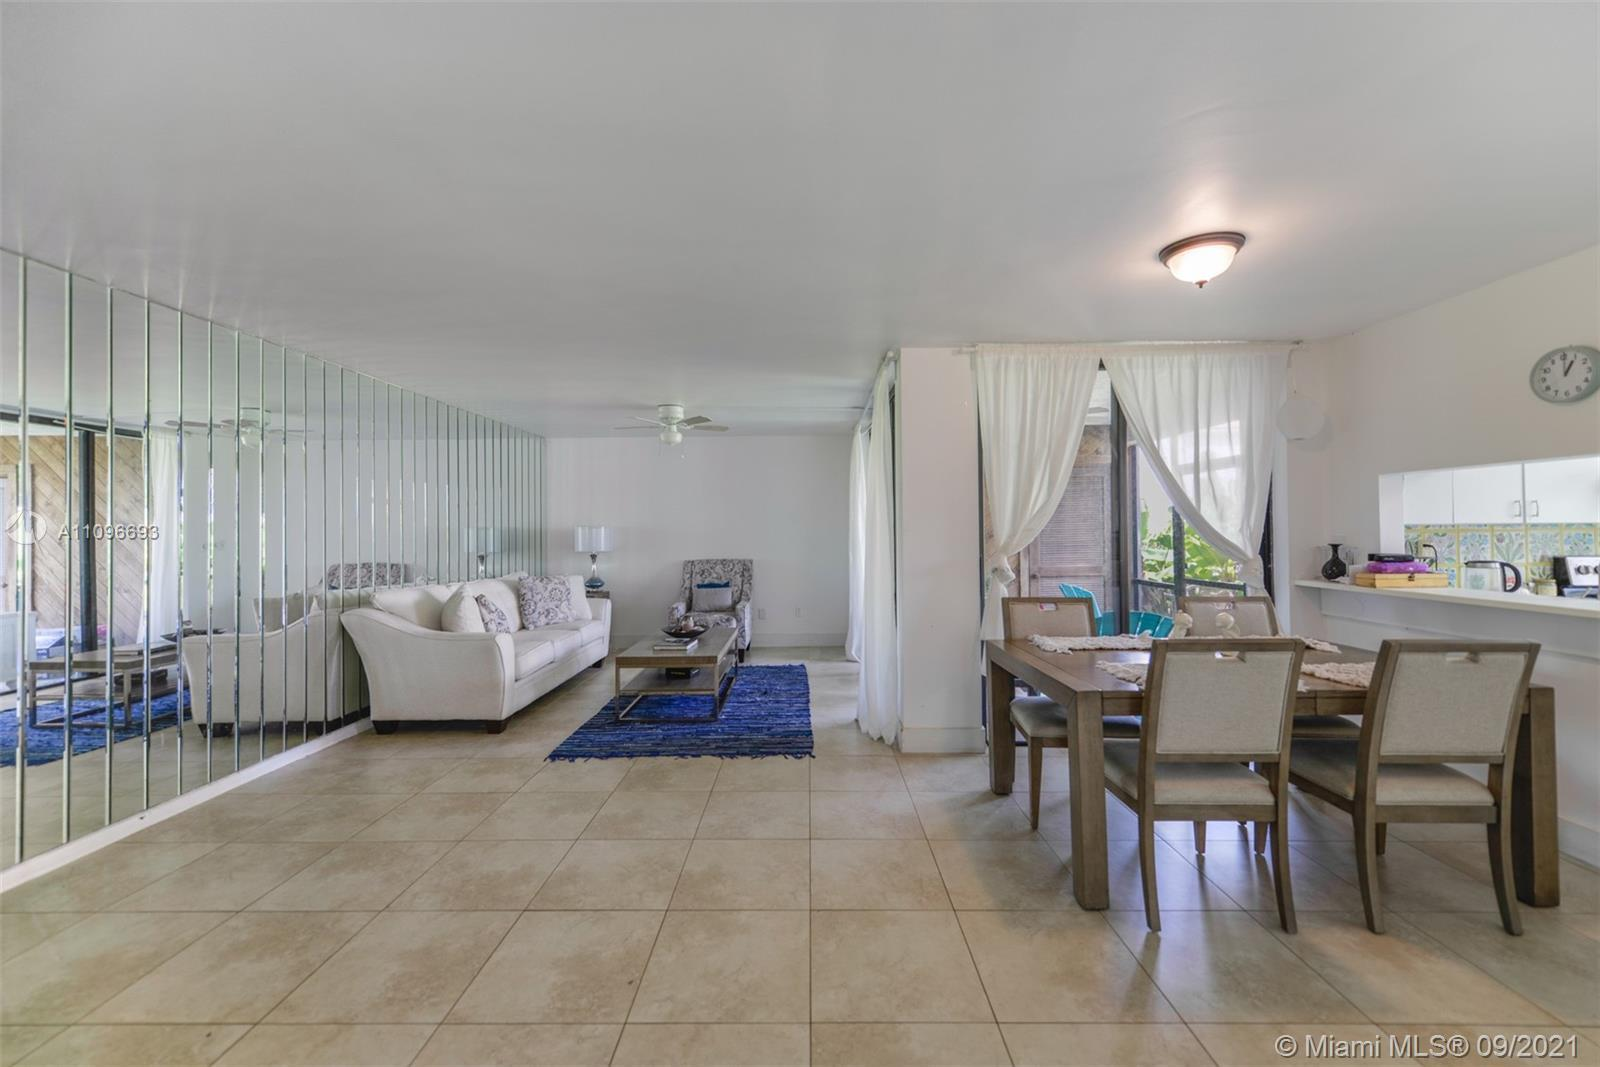 SPECTACULAR OPPORTUNITY TO OWN THIS PERFECTLY LOCATED RESIDENCE IN AVENTURA! 3 BEDS 2 BATHS, WITH RE